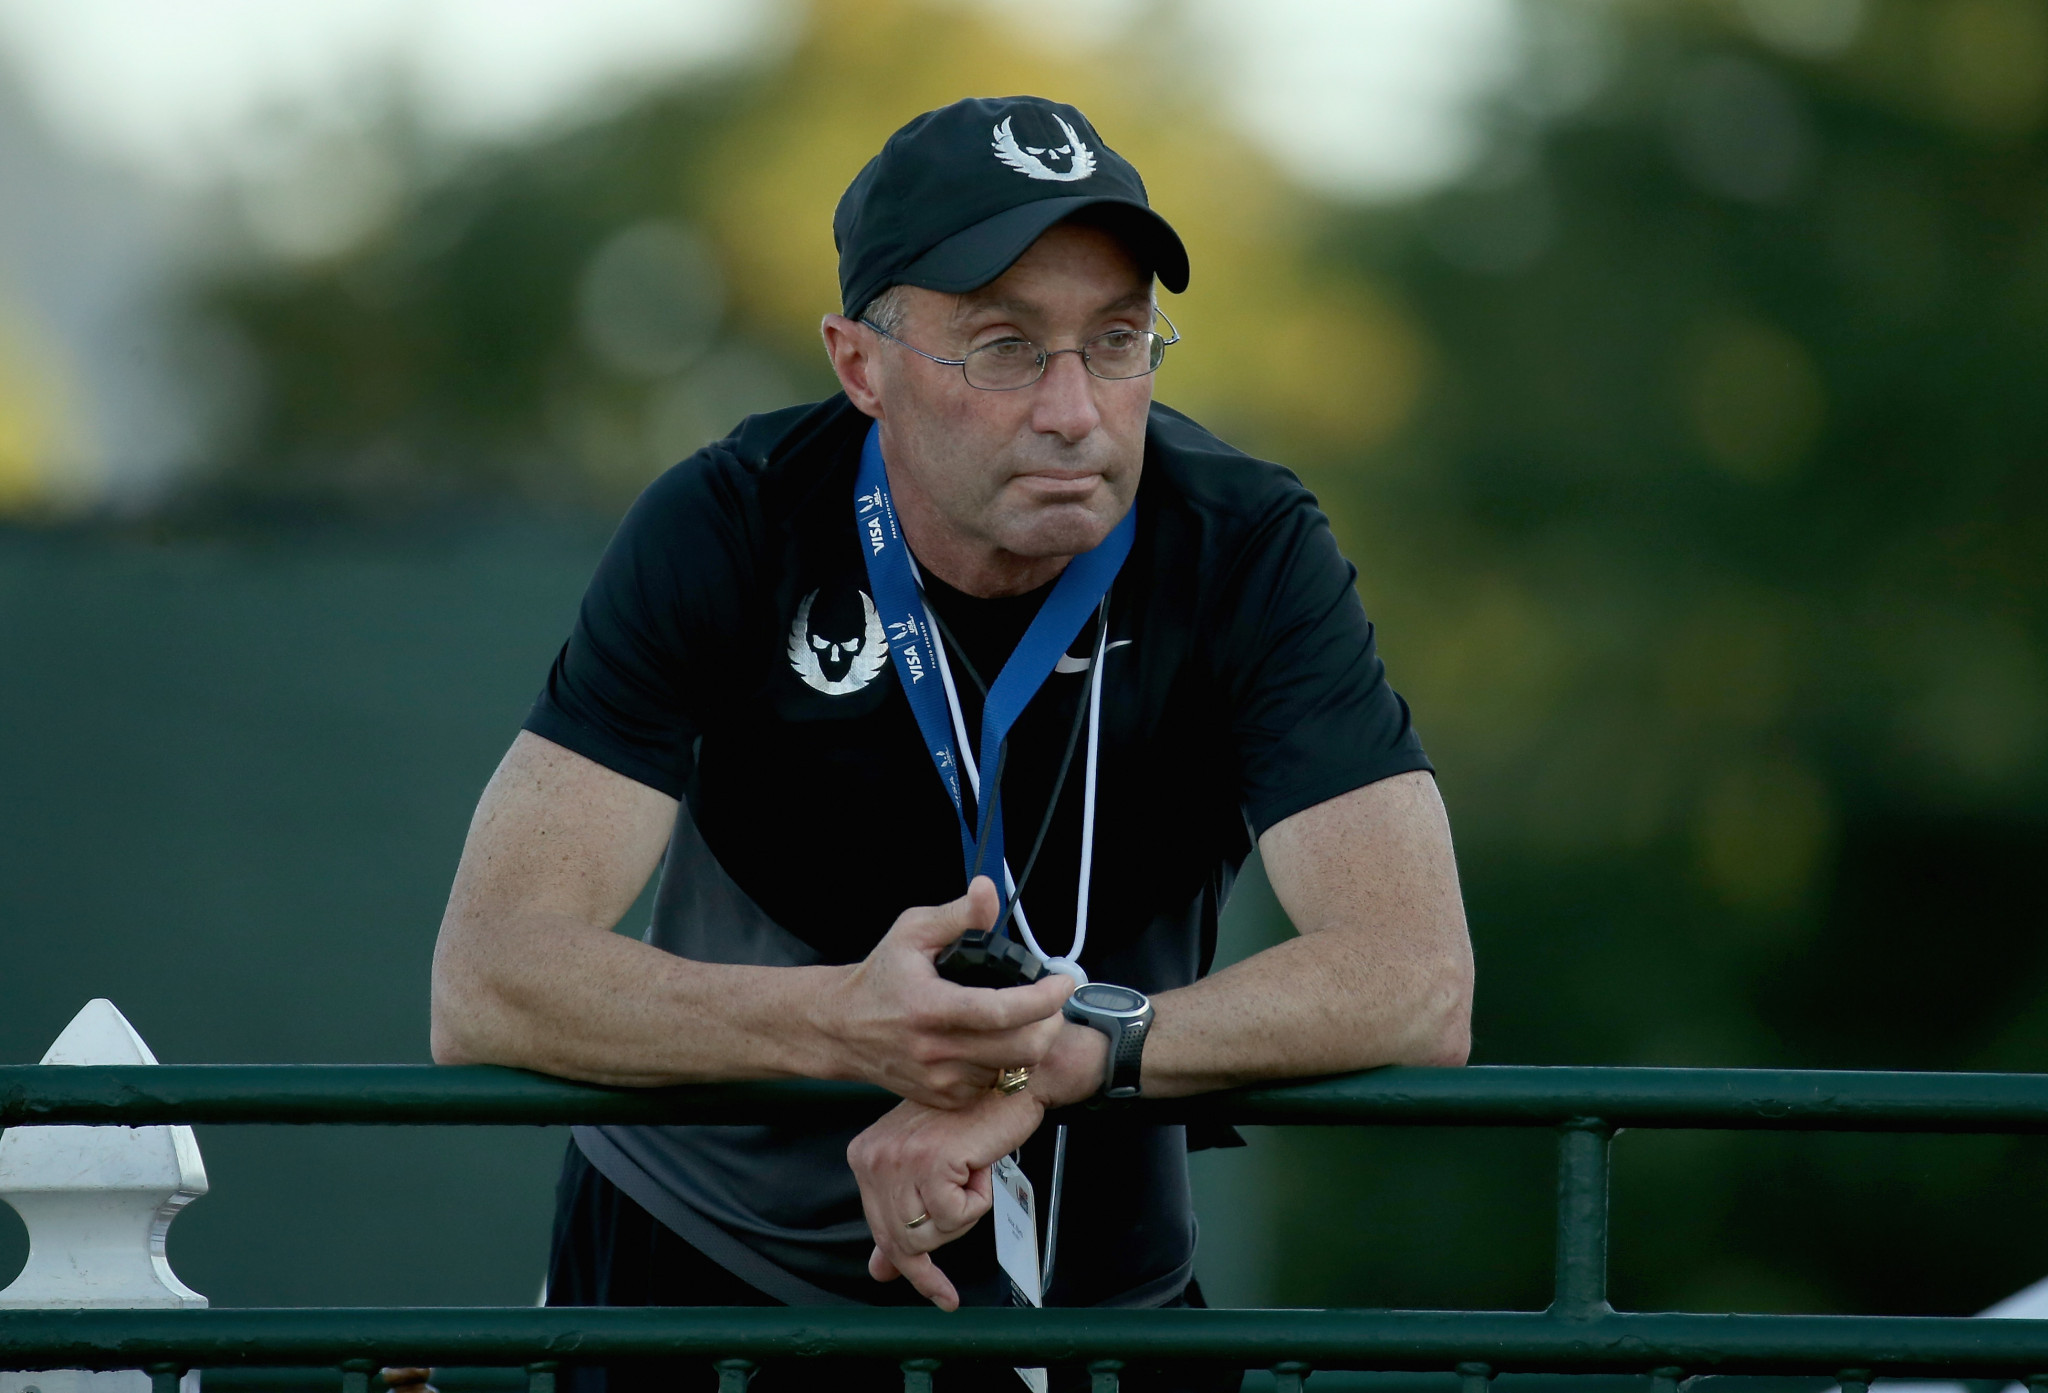 UK Athletics confirmed it has given UK Anti-Doping a full version of the 2015 review of American coach Alberto Salazar and the Nike Oregon Project ©Getty Images